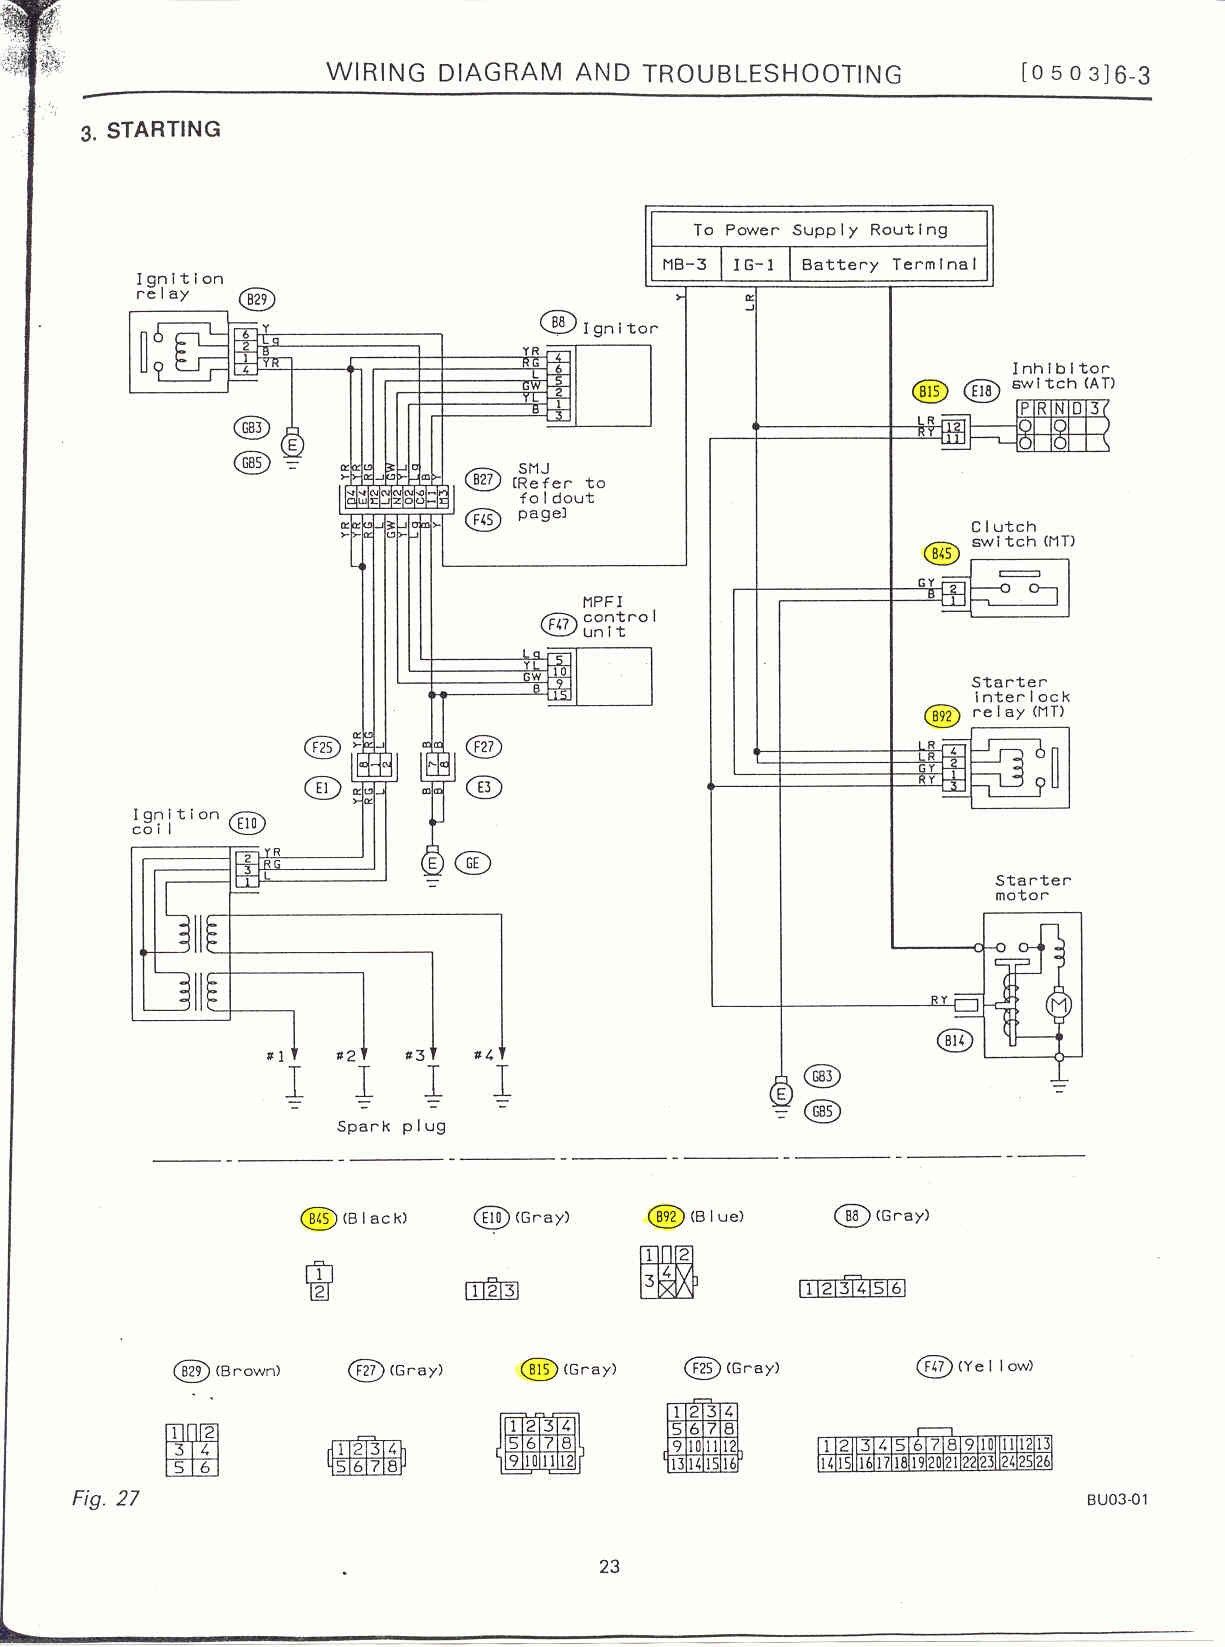 94 subaru legacy wiring diagram 94 ss won't start please help - legacycentral bbs